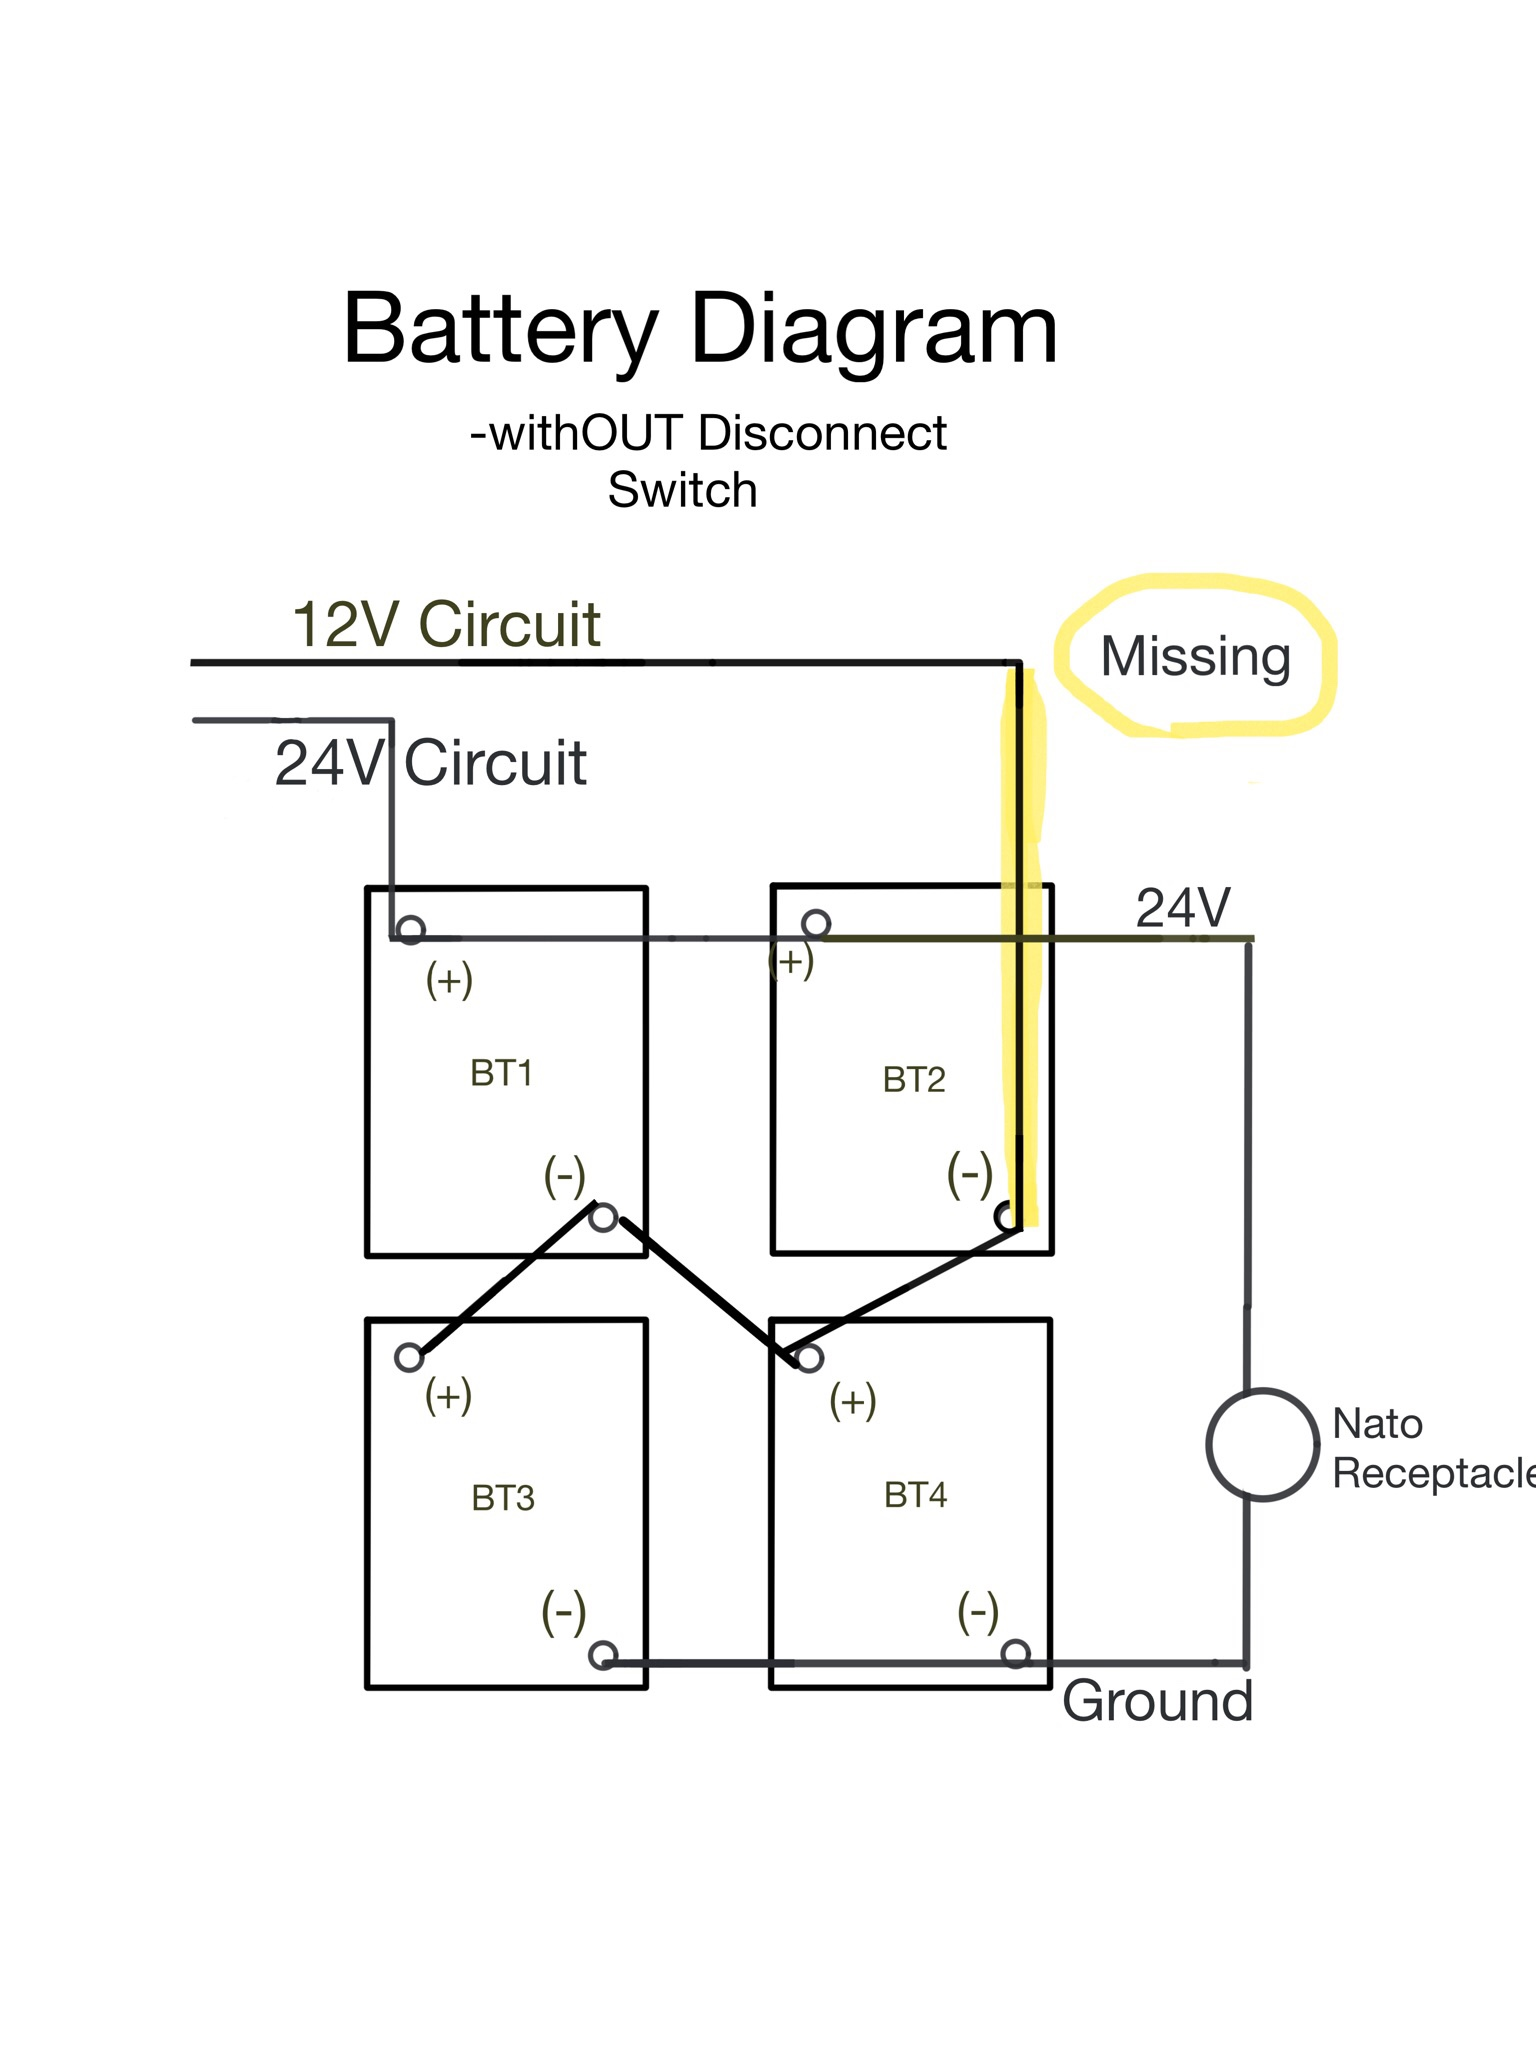 hight resolution of i did a revised battery diagram to illustrate what we missed on my oem diagram https uploads tapatalk cdn com 201 1e23590e62 jpg